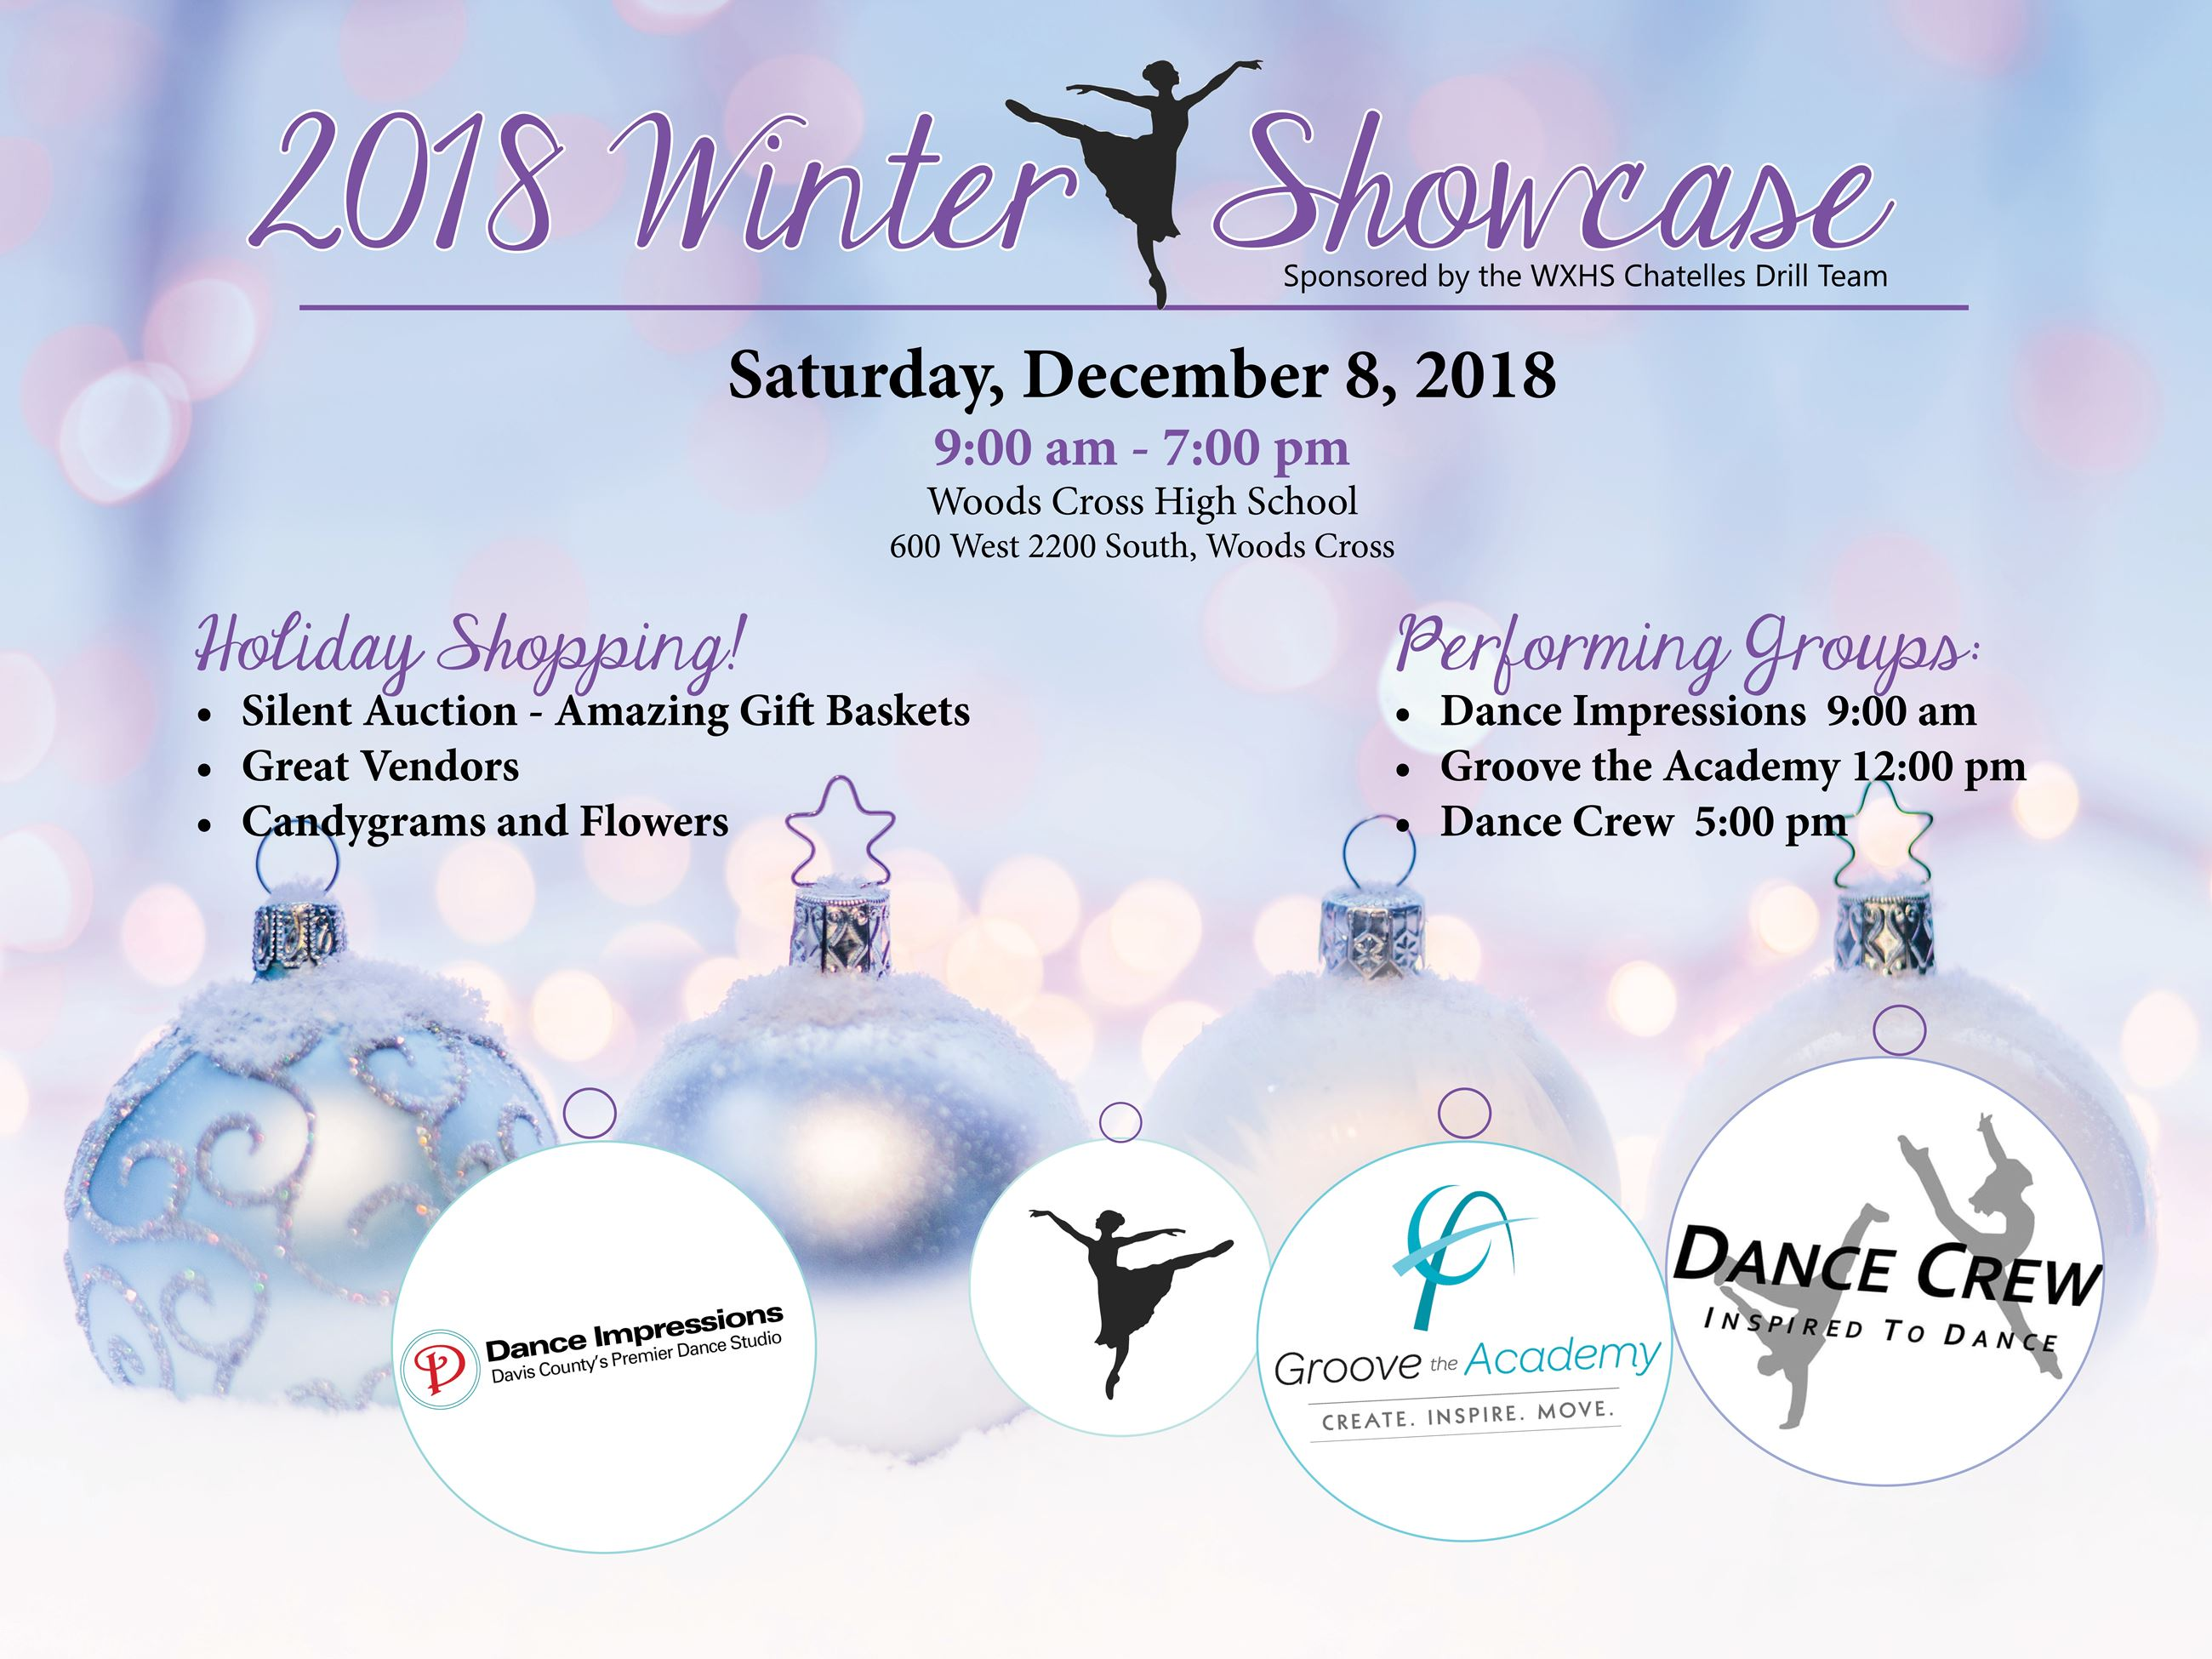 Winter Showcase 2018 flyer